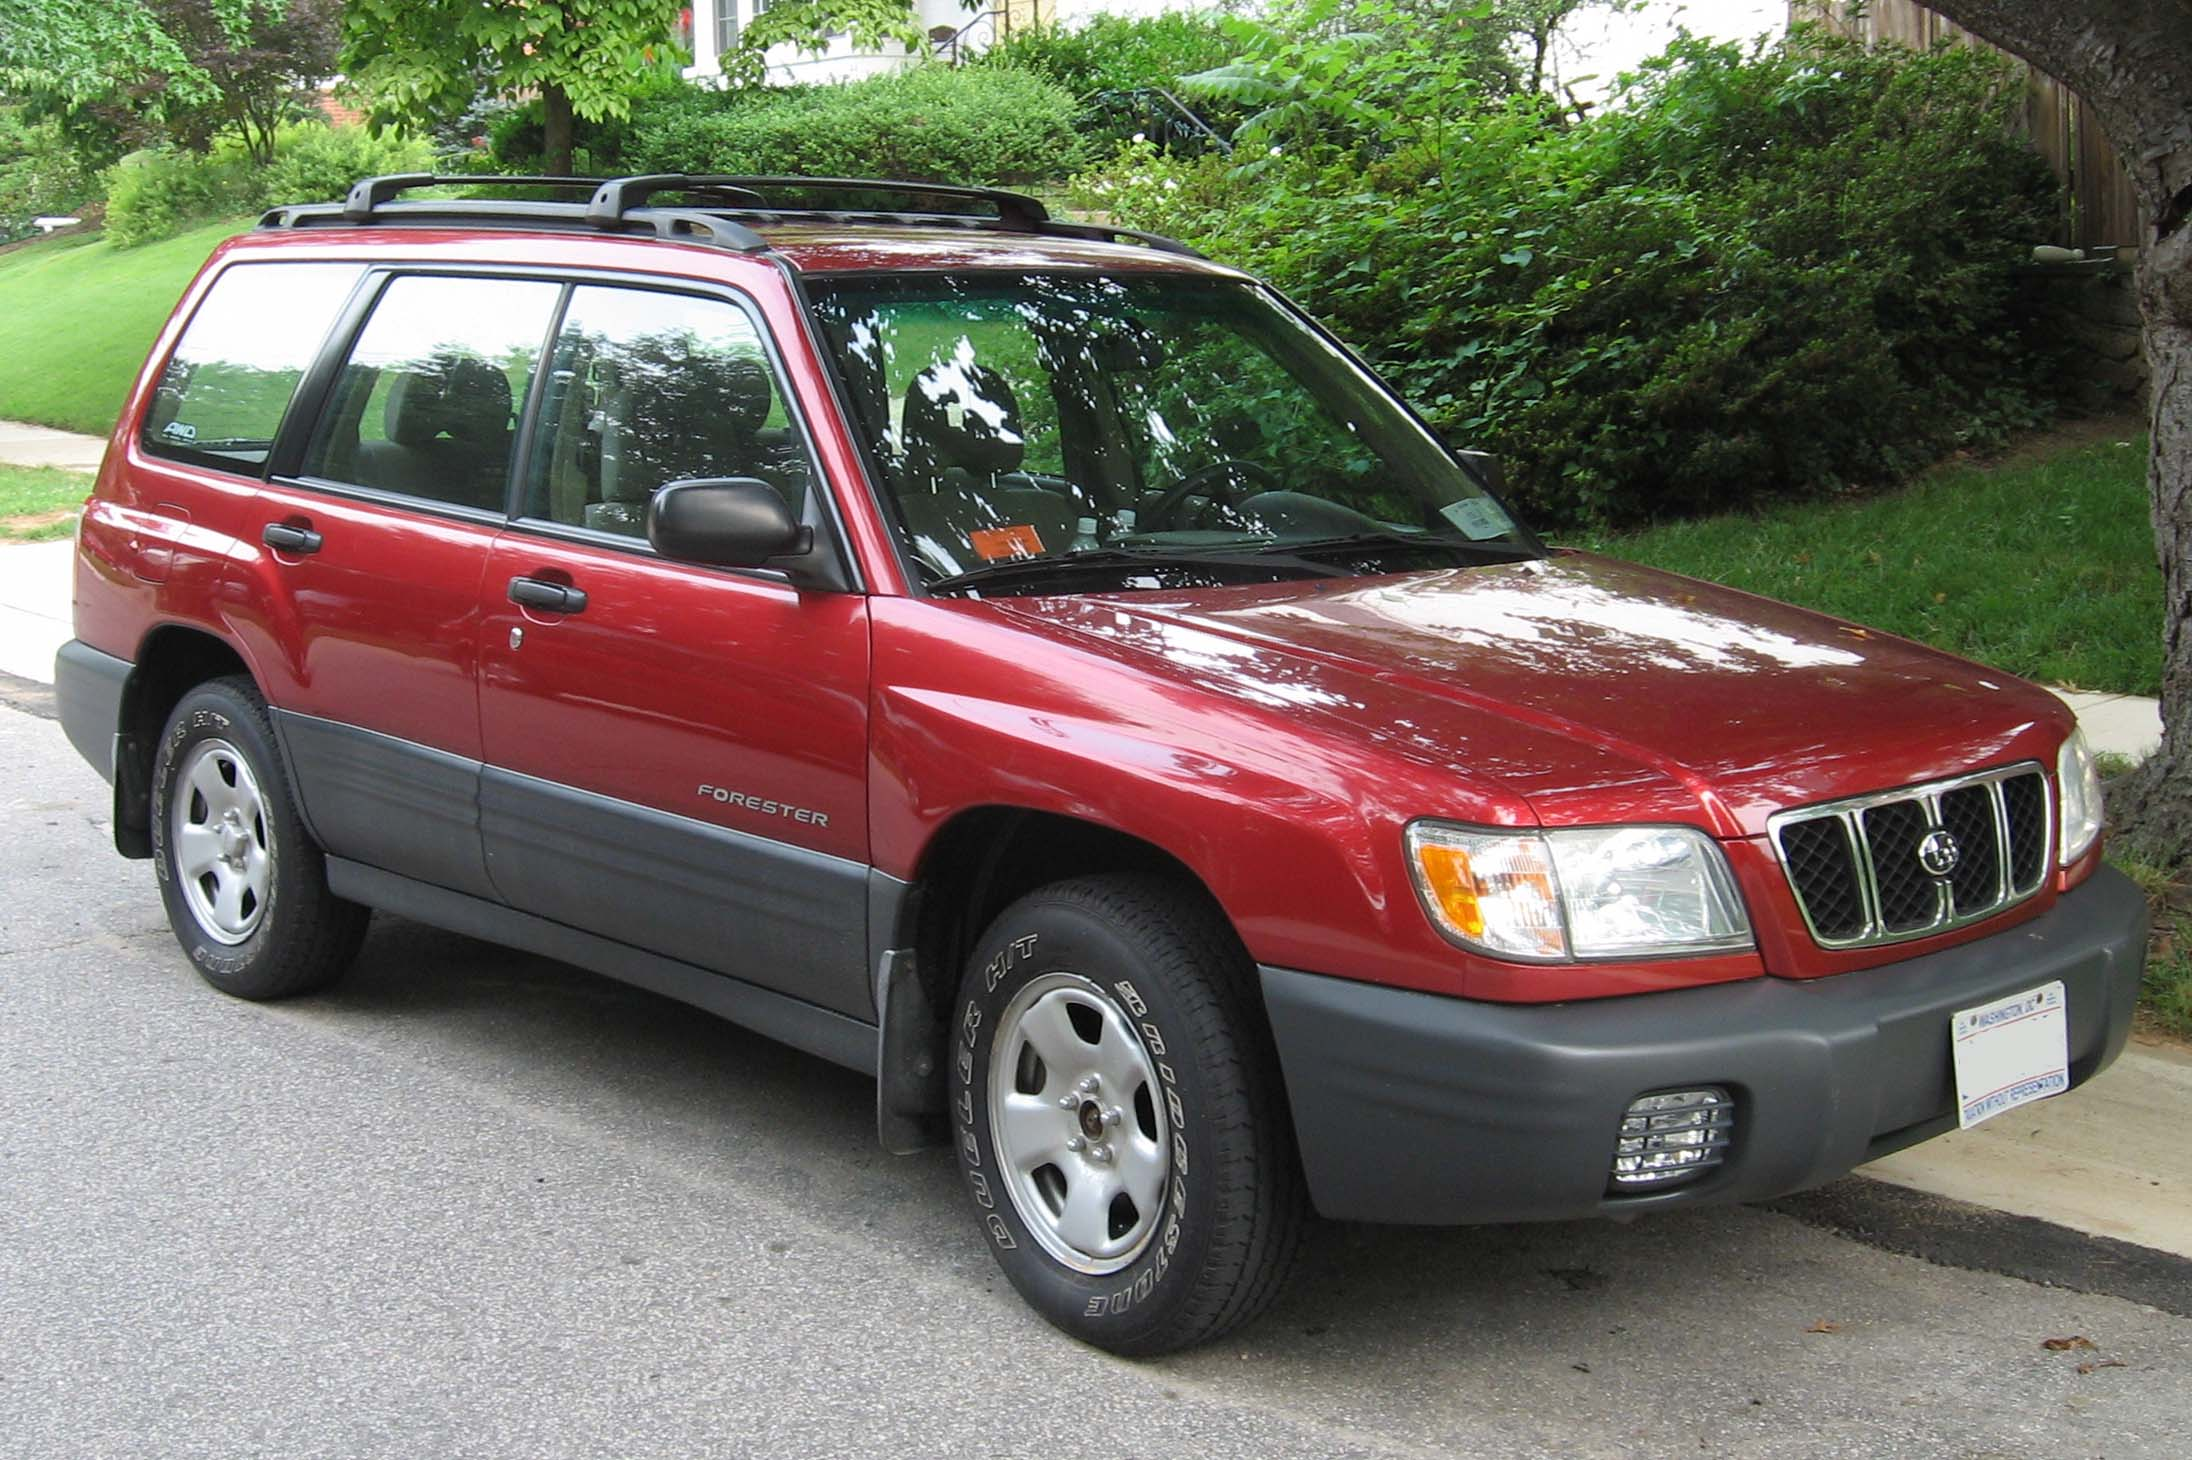 file 2001 subaru forester jpg wikimedia commons https commons wikimedia org wiki file 2001 subaru forester jpg